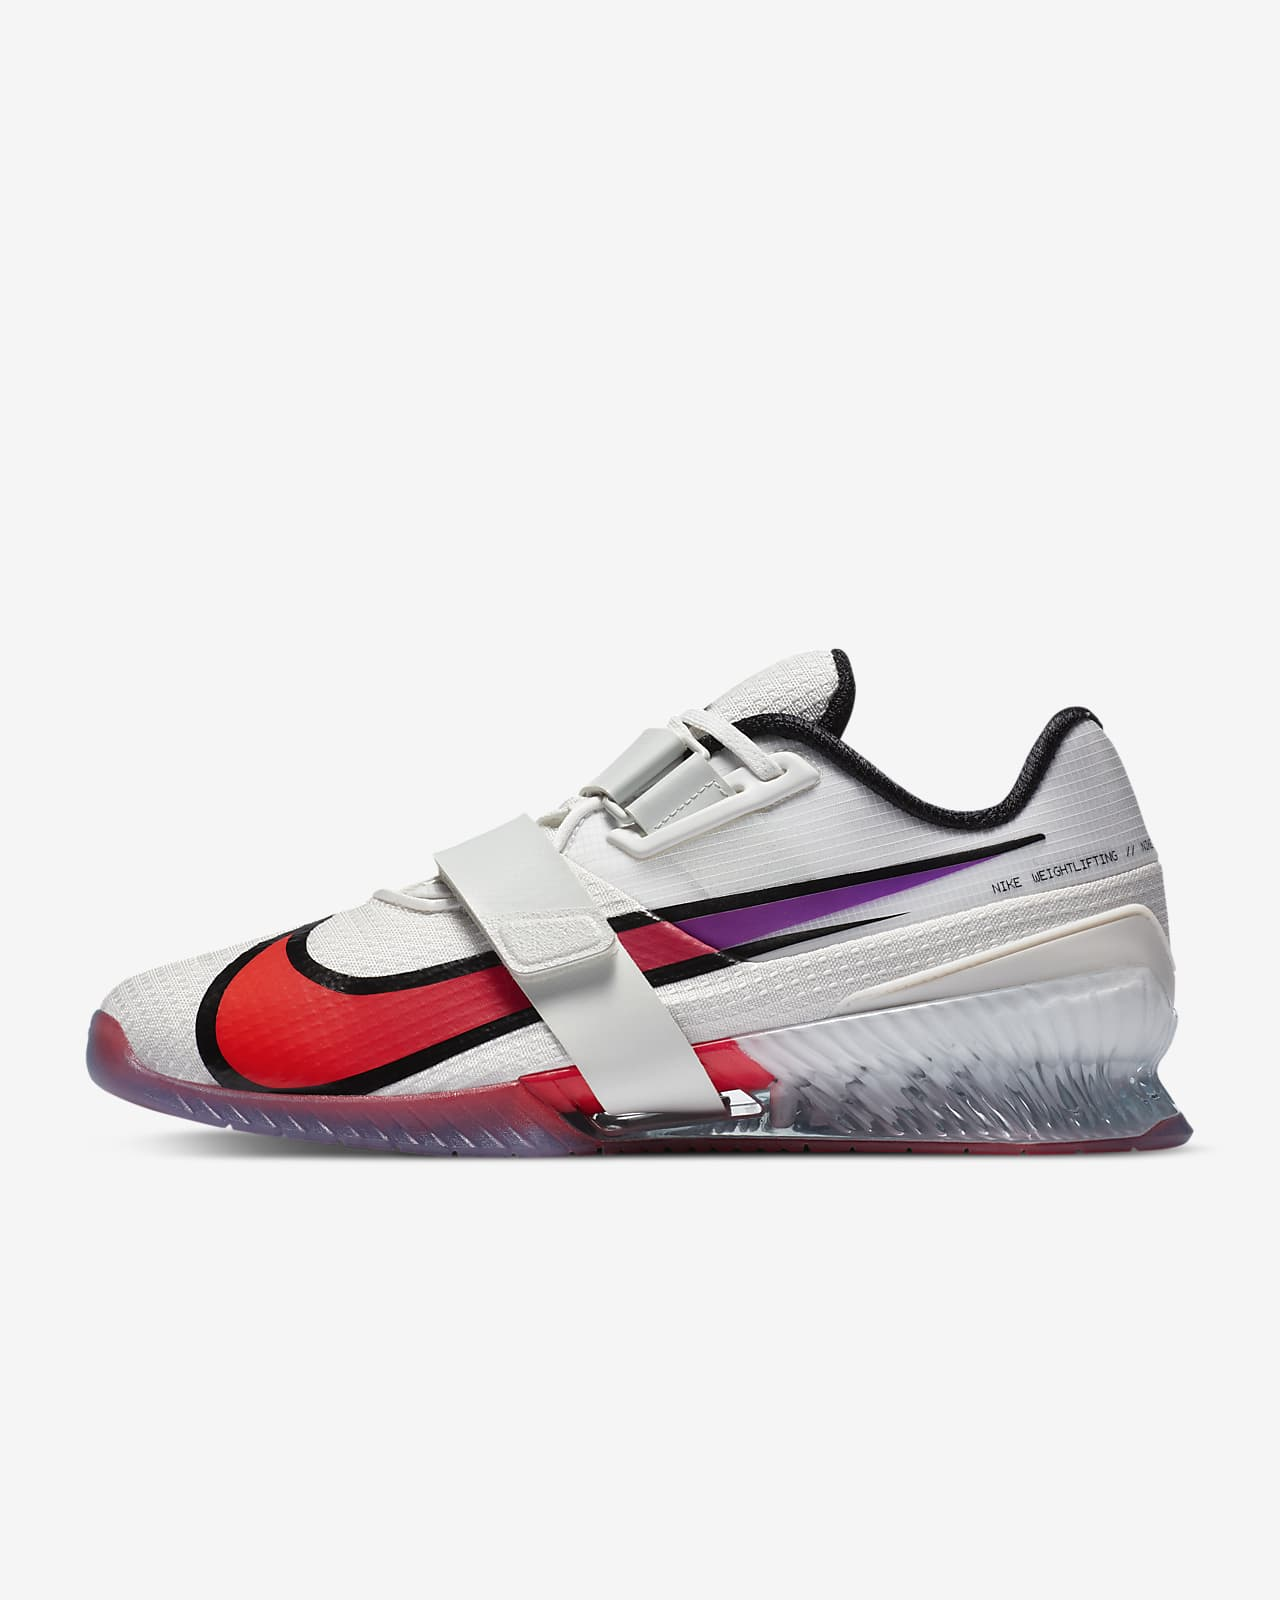 Nike Romaleos 4 SE Training Shoe